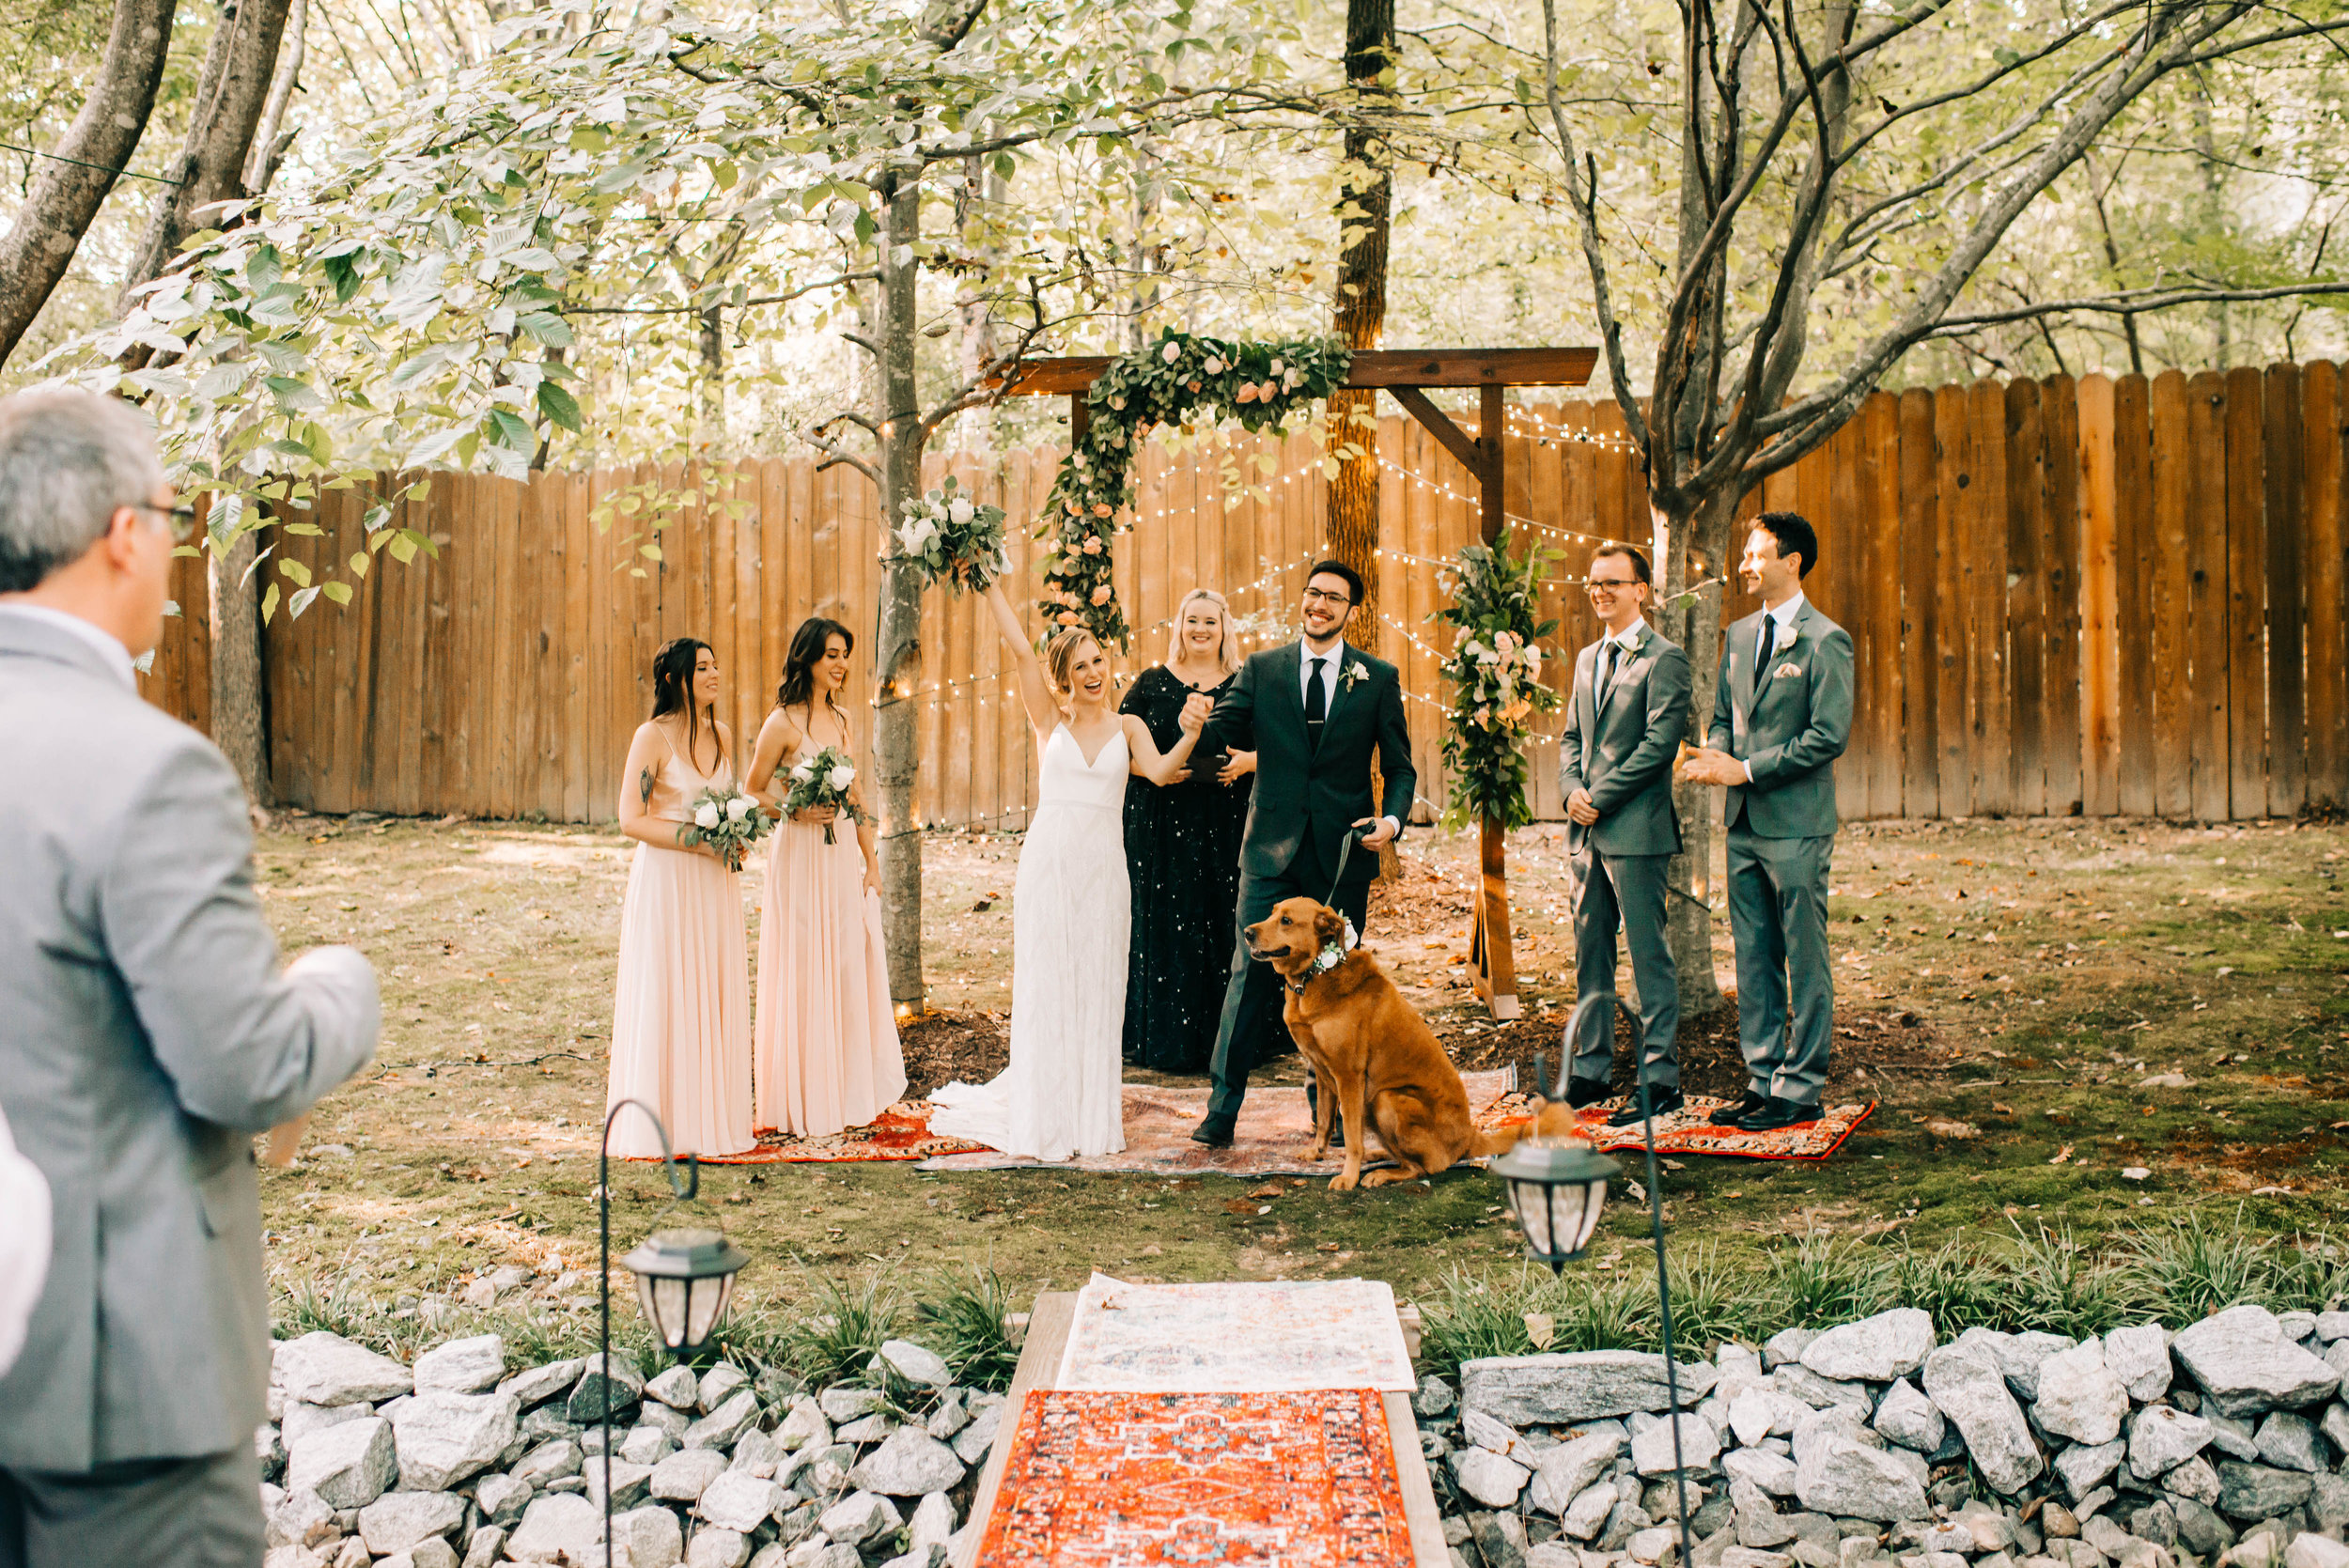 atlanta backyard wedding bay area oakland san francisco engagement wedding nontraditional fun creative eclectic photographer magic-693.jpg